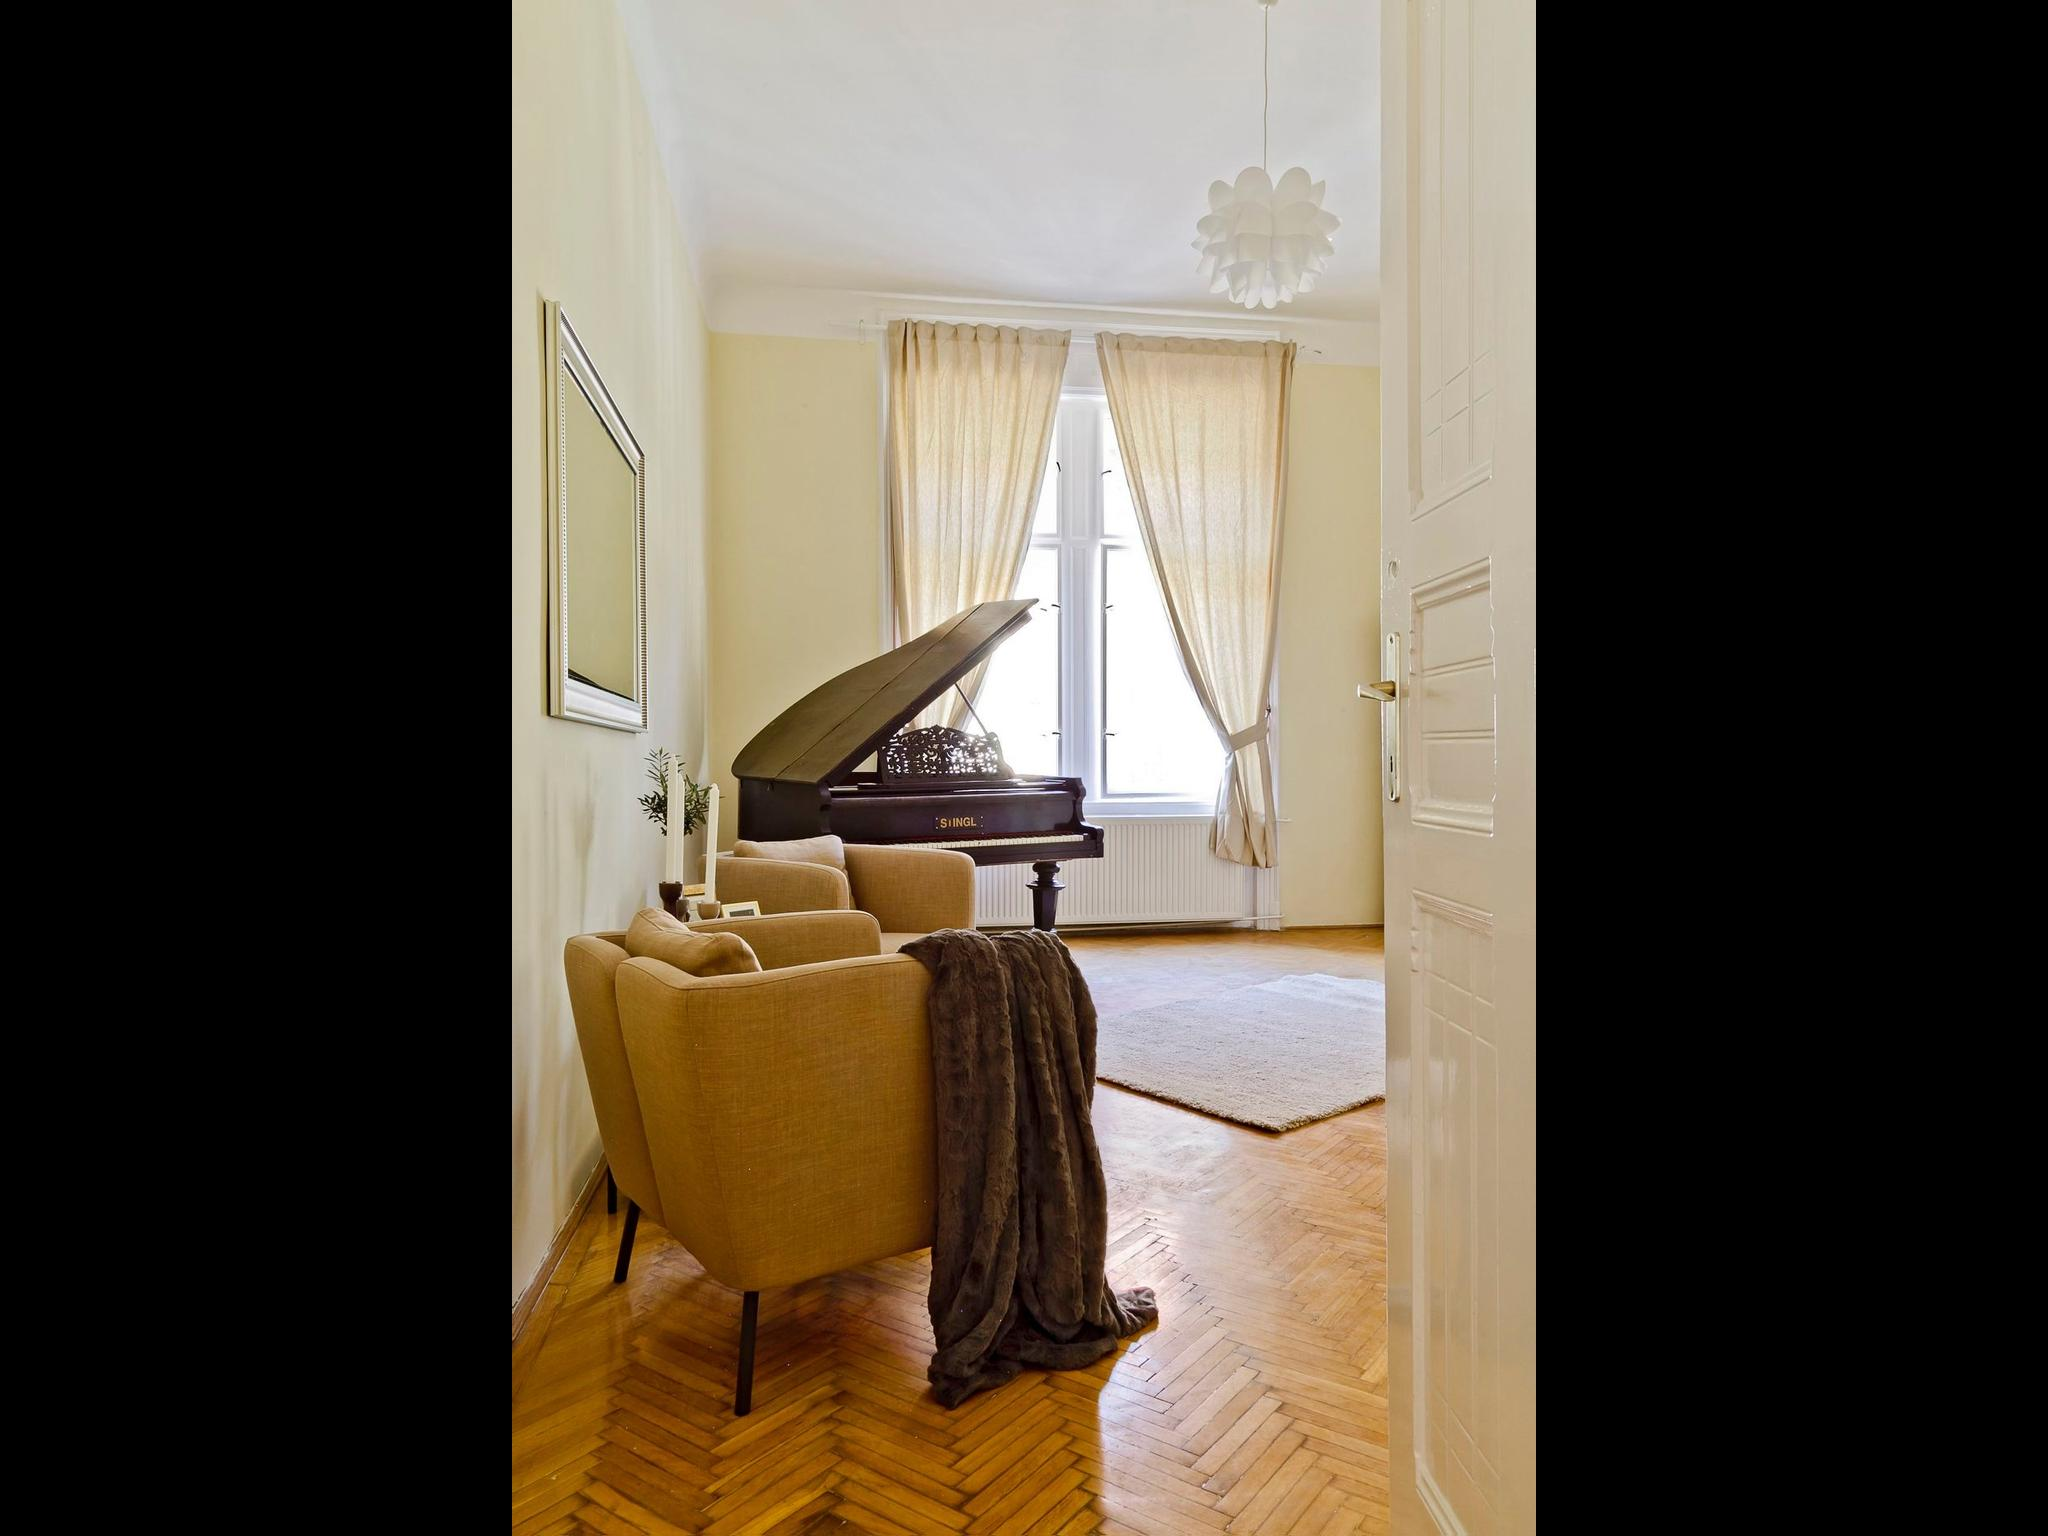 Brody - Private room apartment in Budapest